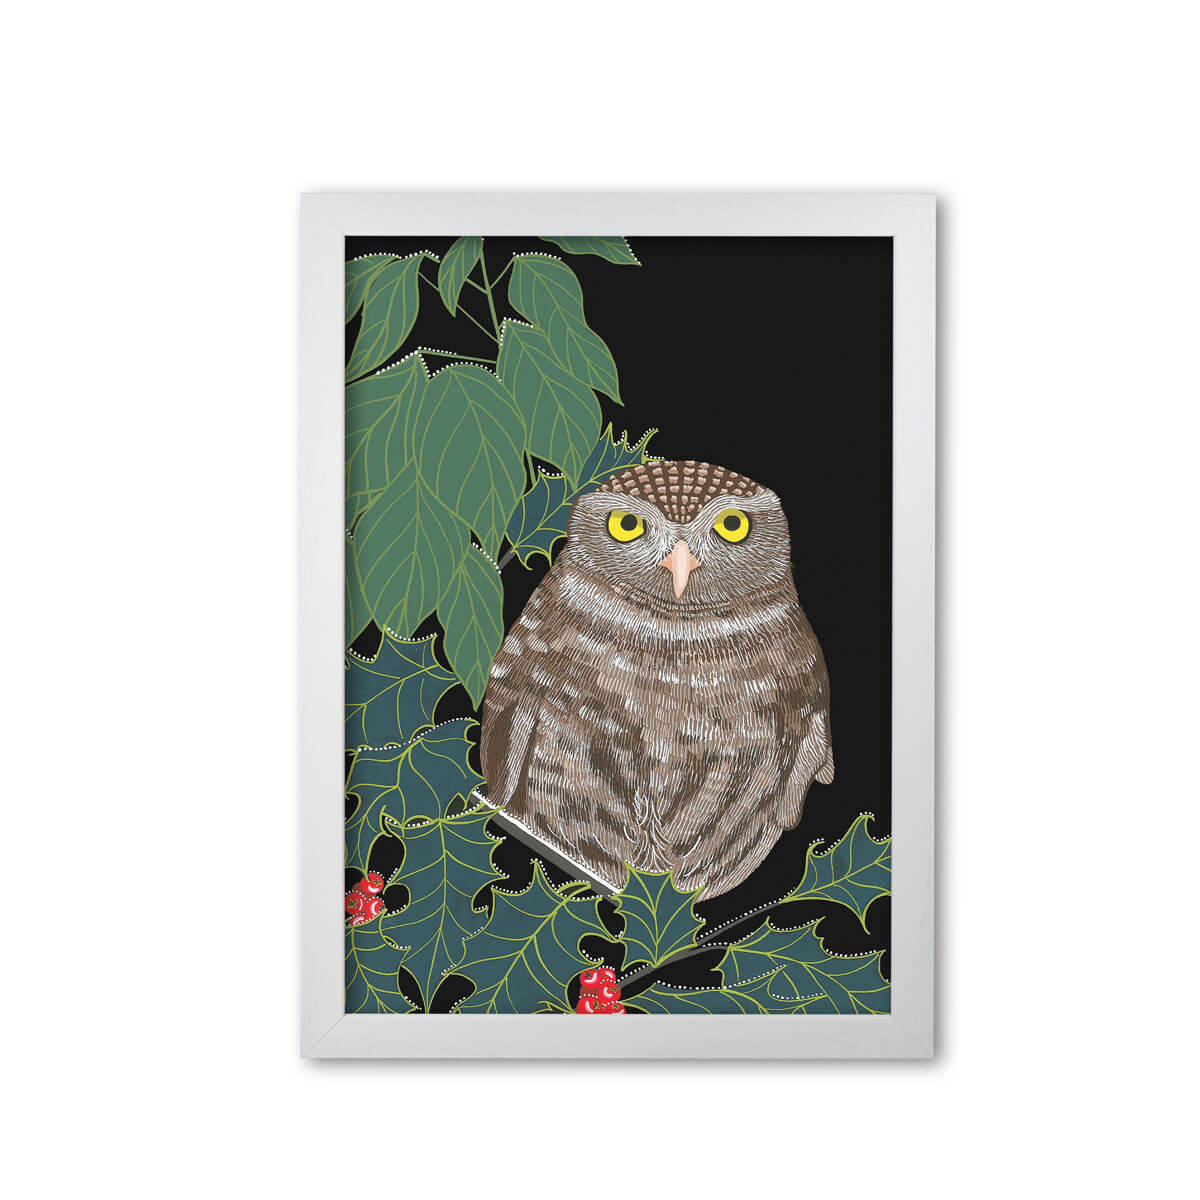 Little Owl Print Mounted And Framed By Bird The Artist